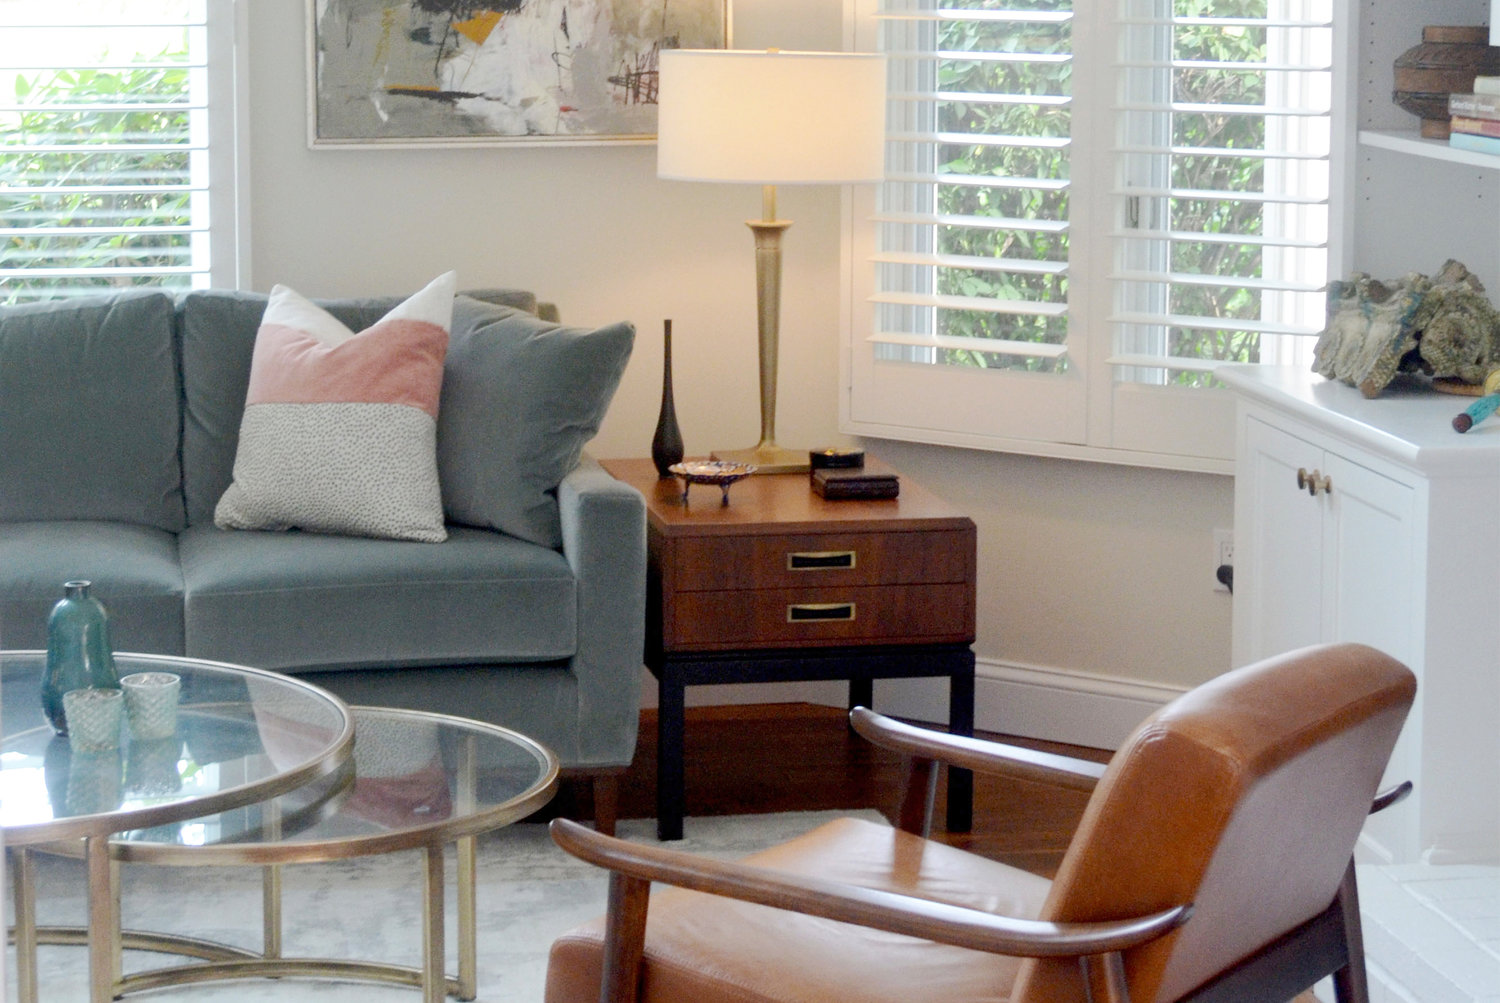 Plantation shutters help insulate during cold months